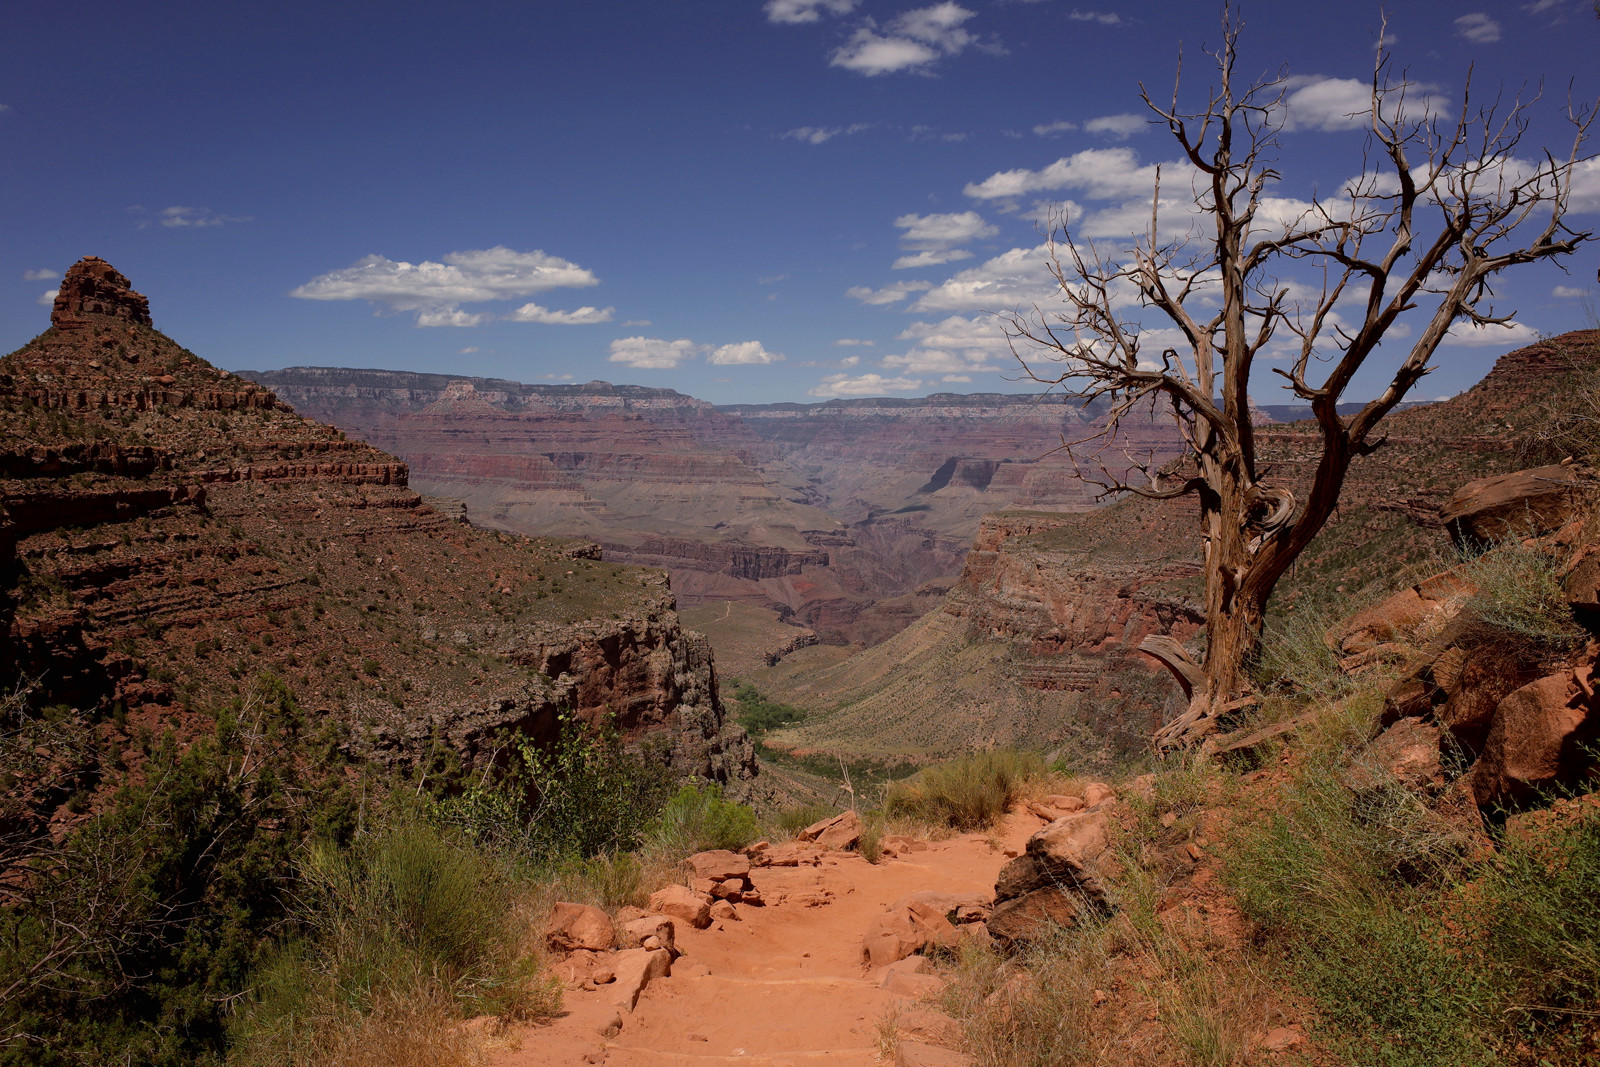 View of the Grand Canyon from the Bright Angel Trail